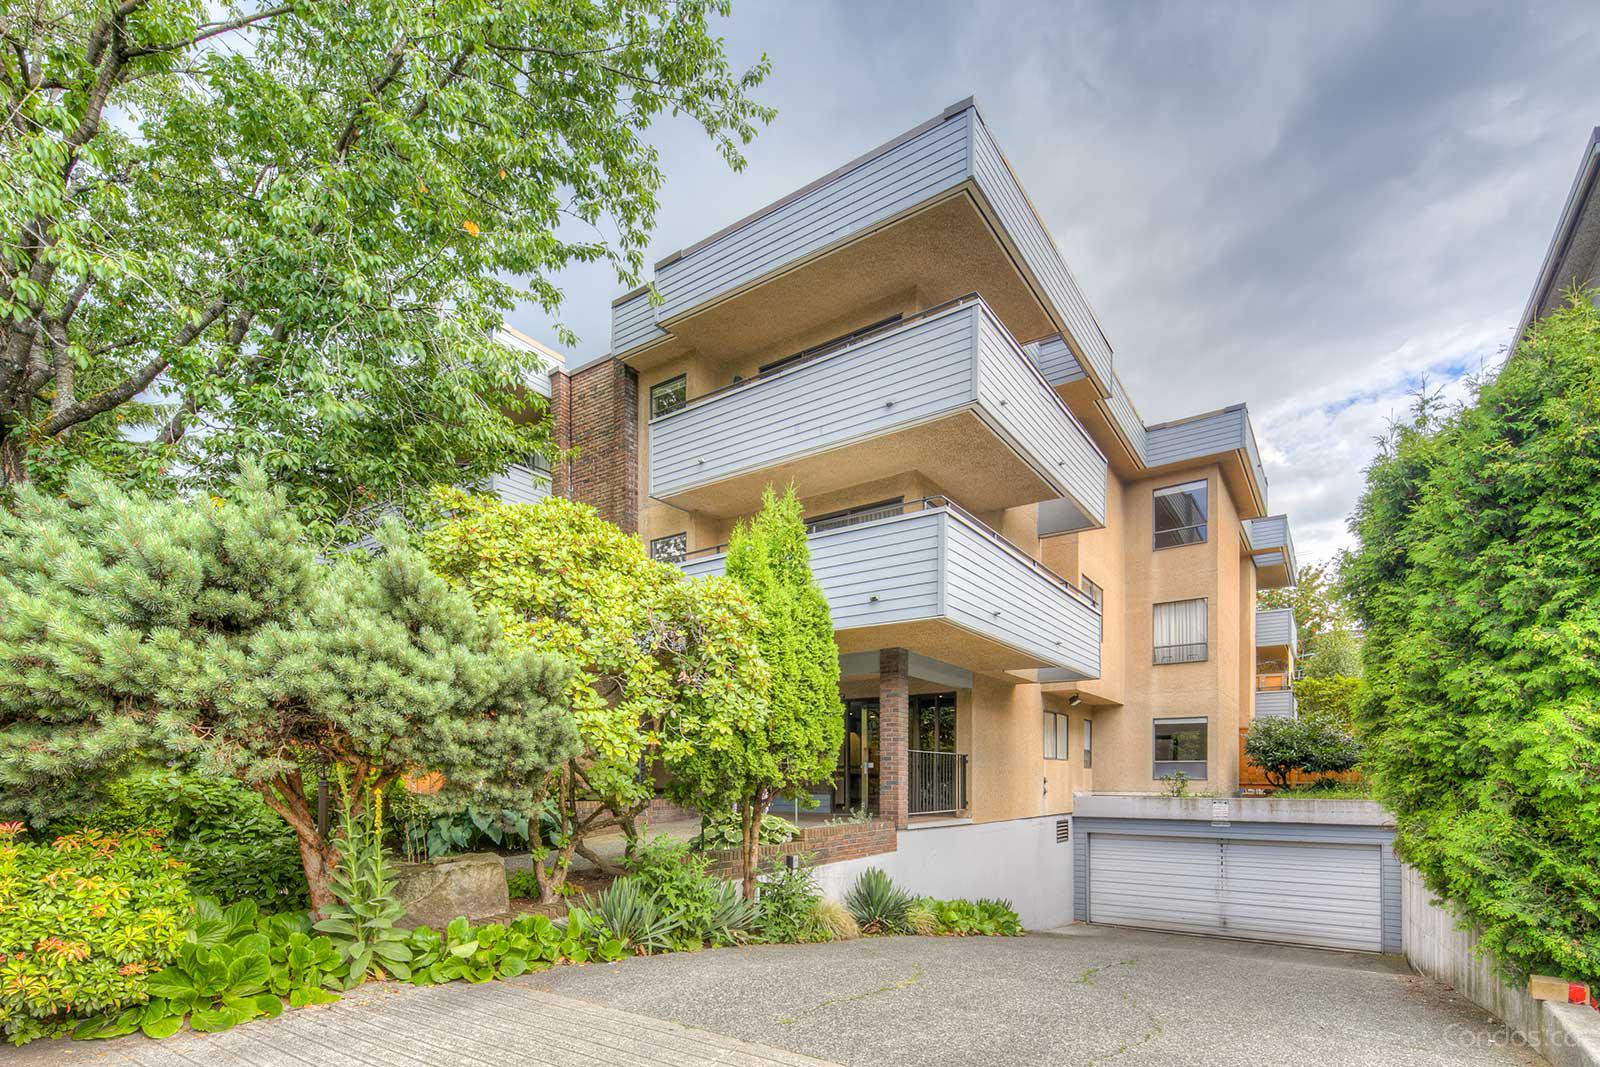 Kensington Place at 1250 W 12th Ave, Vancouver 1